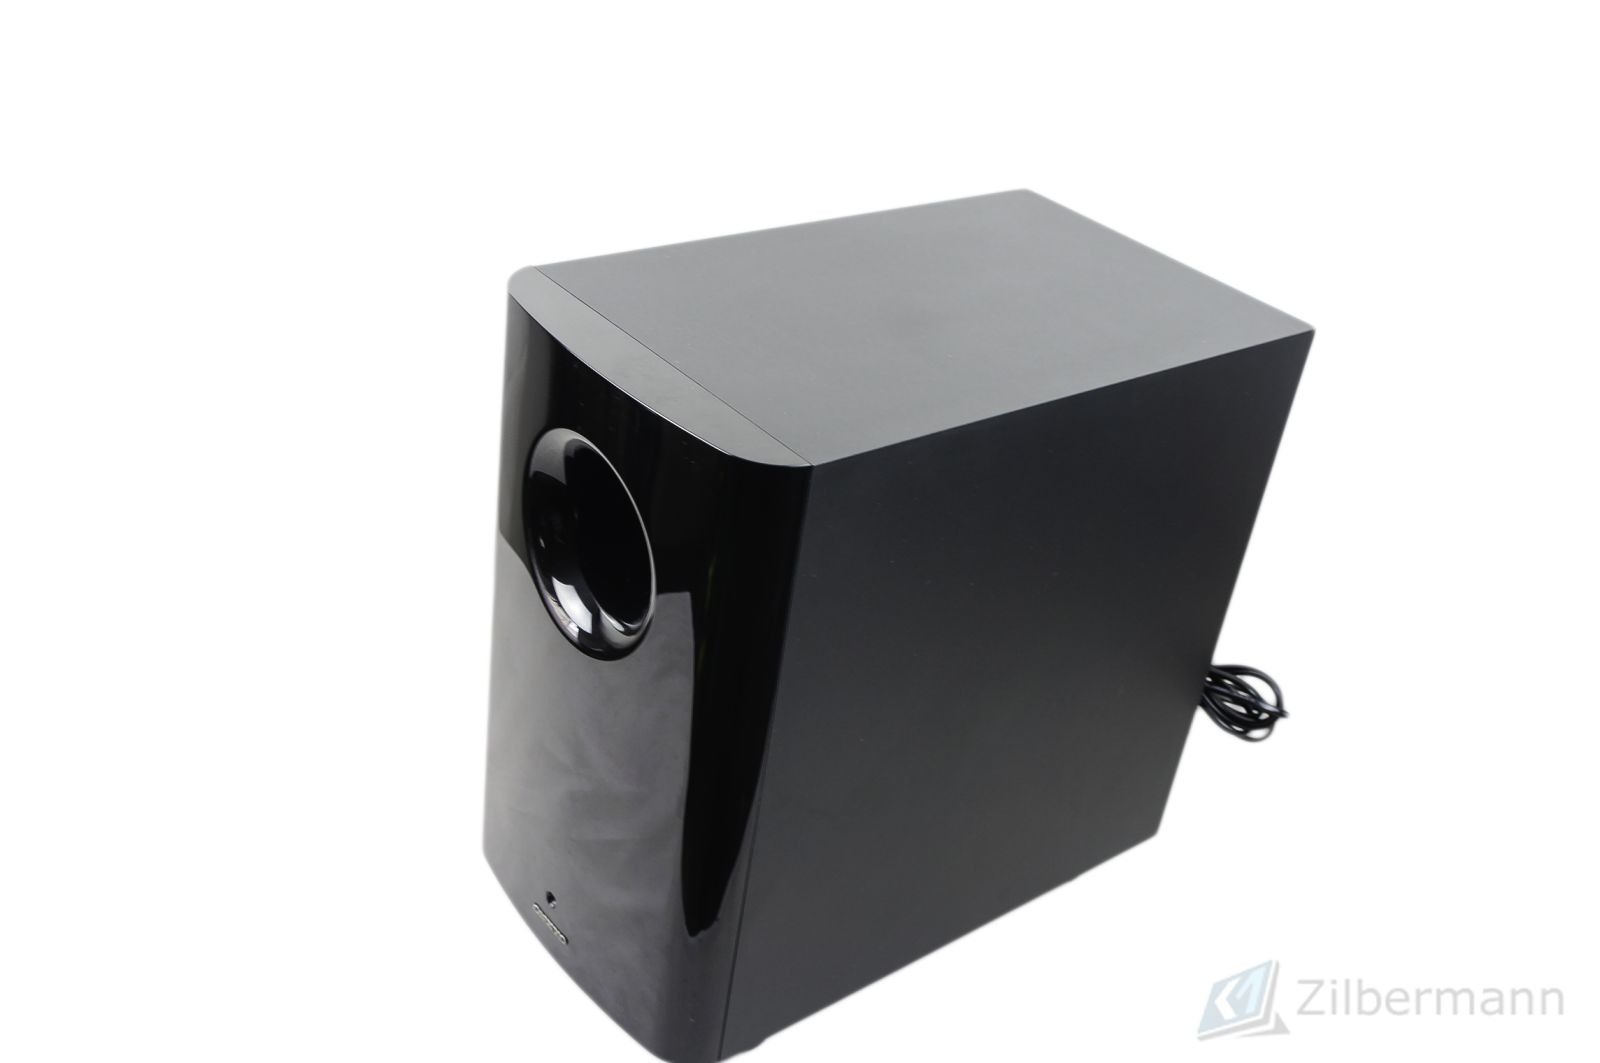 Onkyo_SKW-501E_Subwoofer_Powered_07